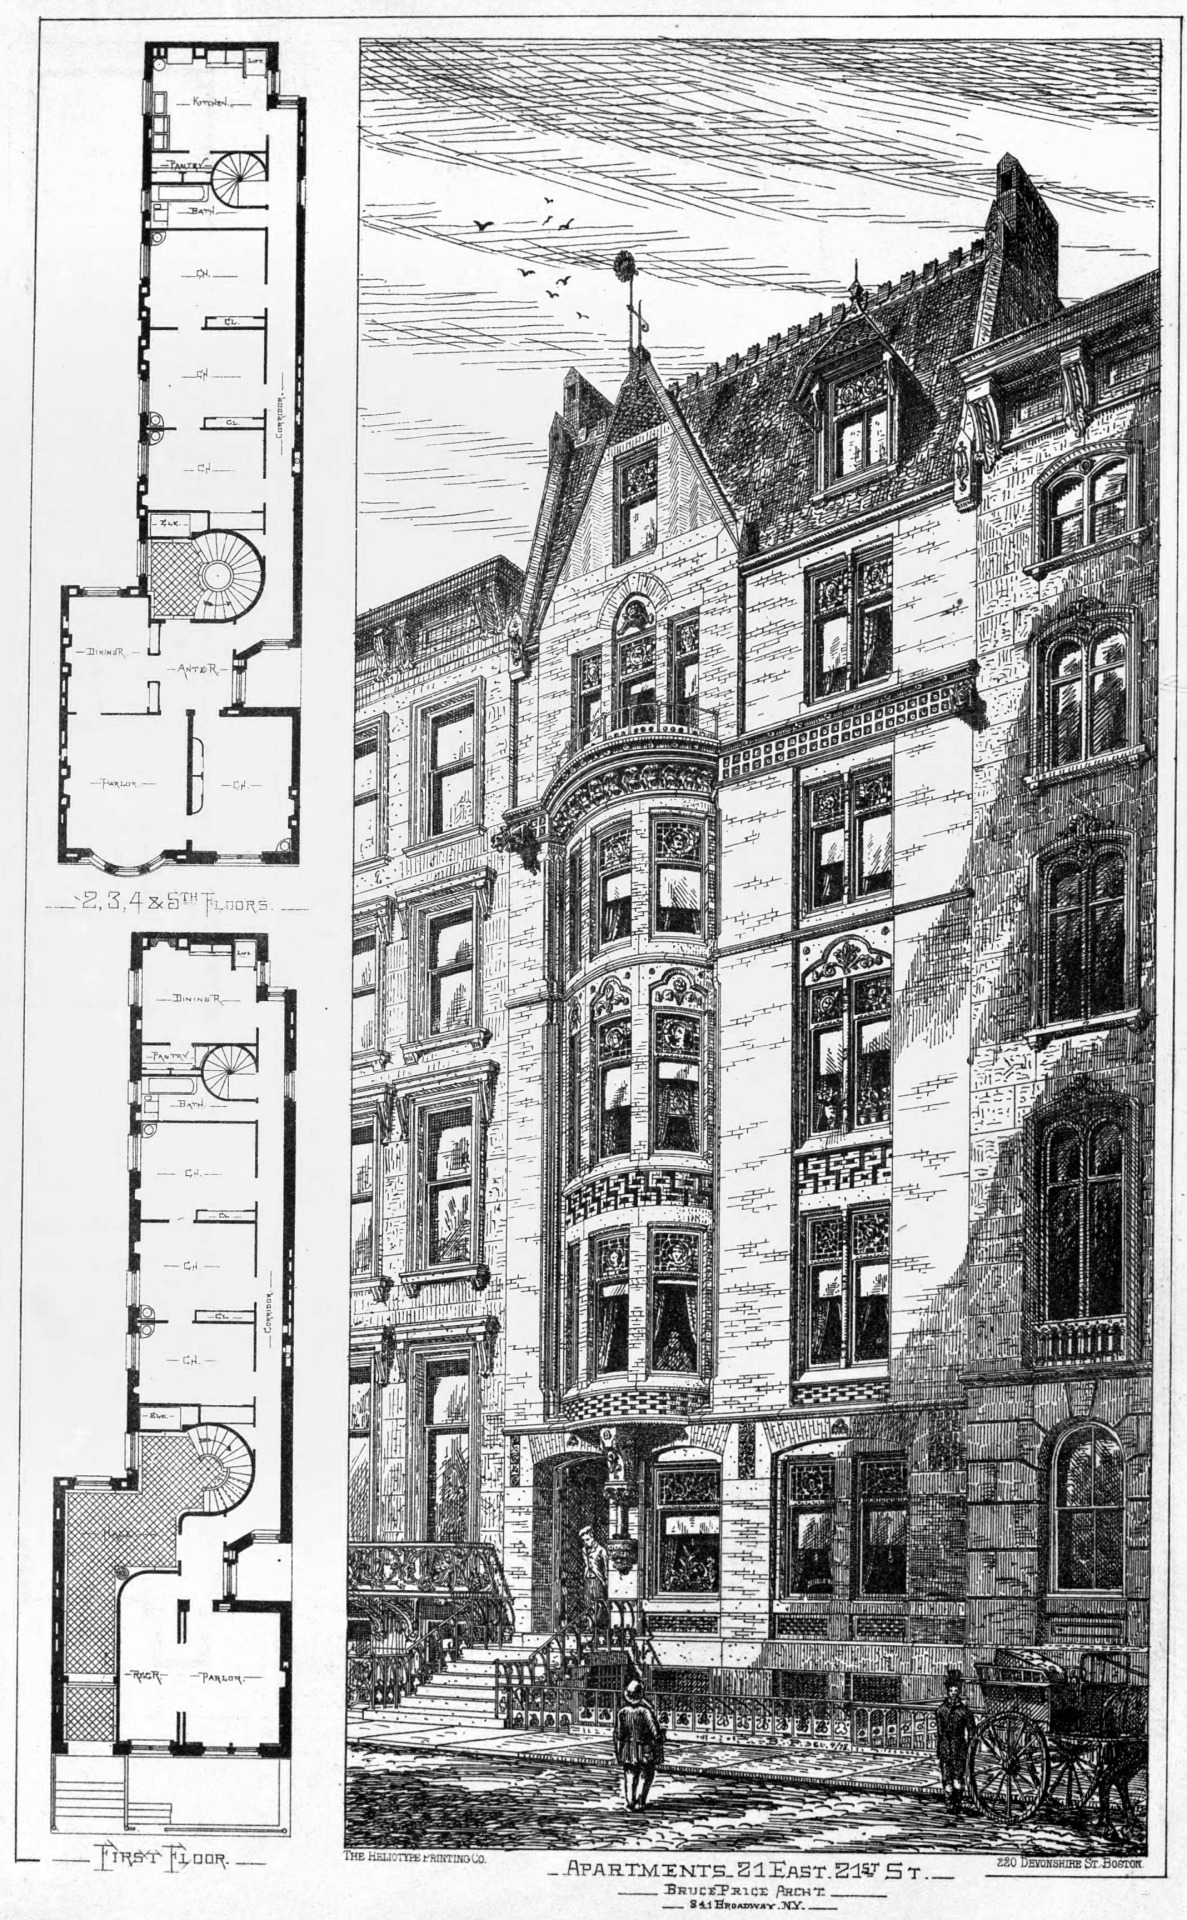 Apartment building on 21 East 21st Street, New York City